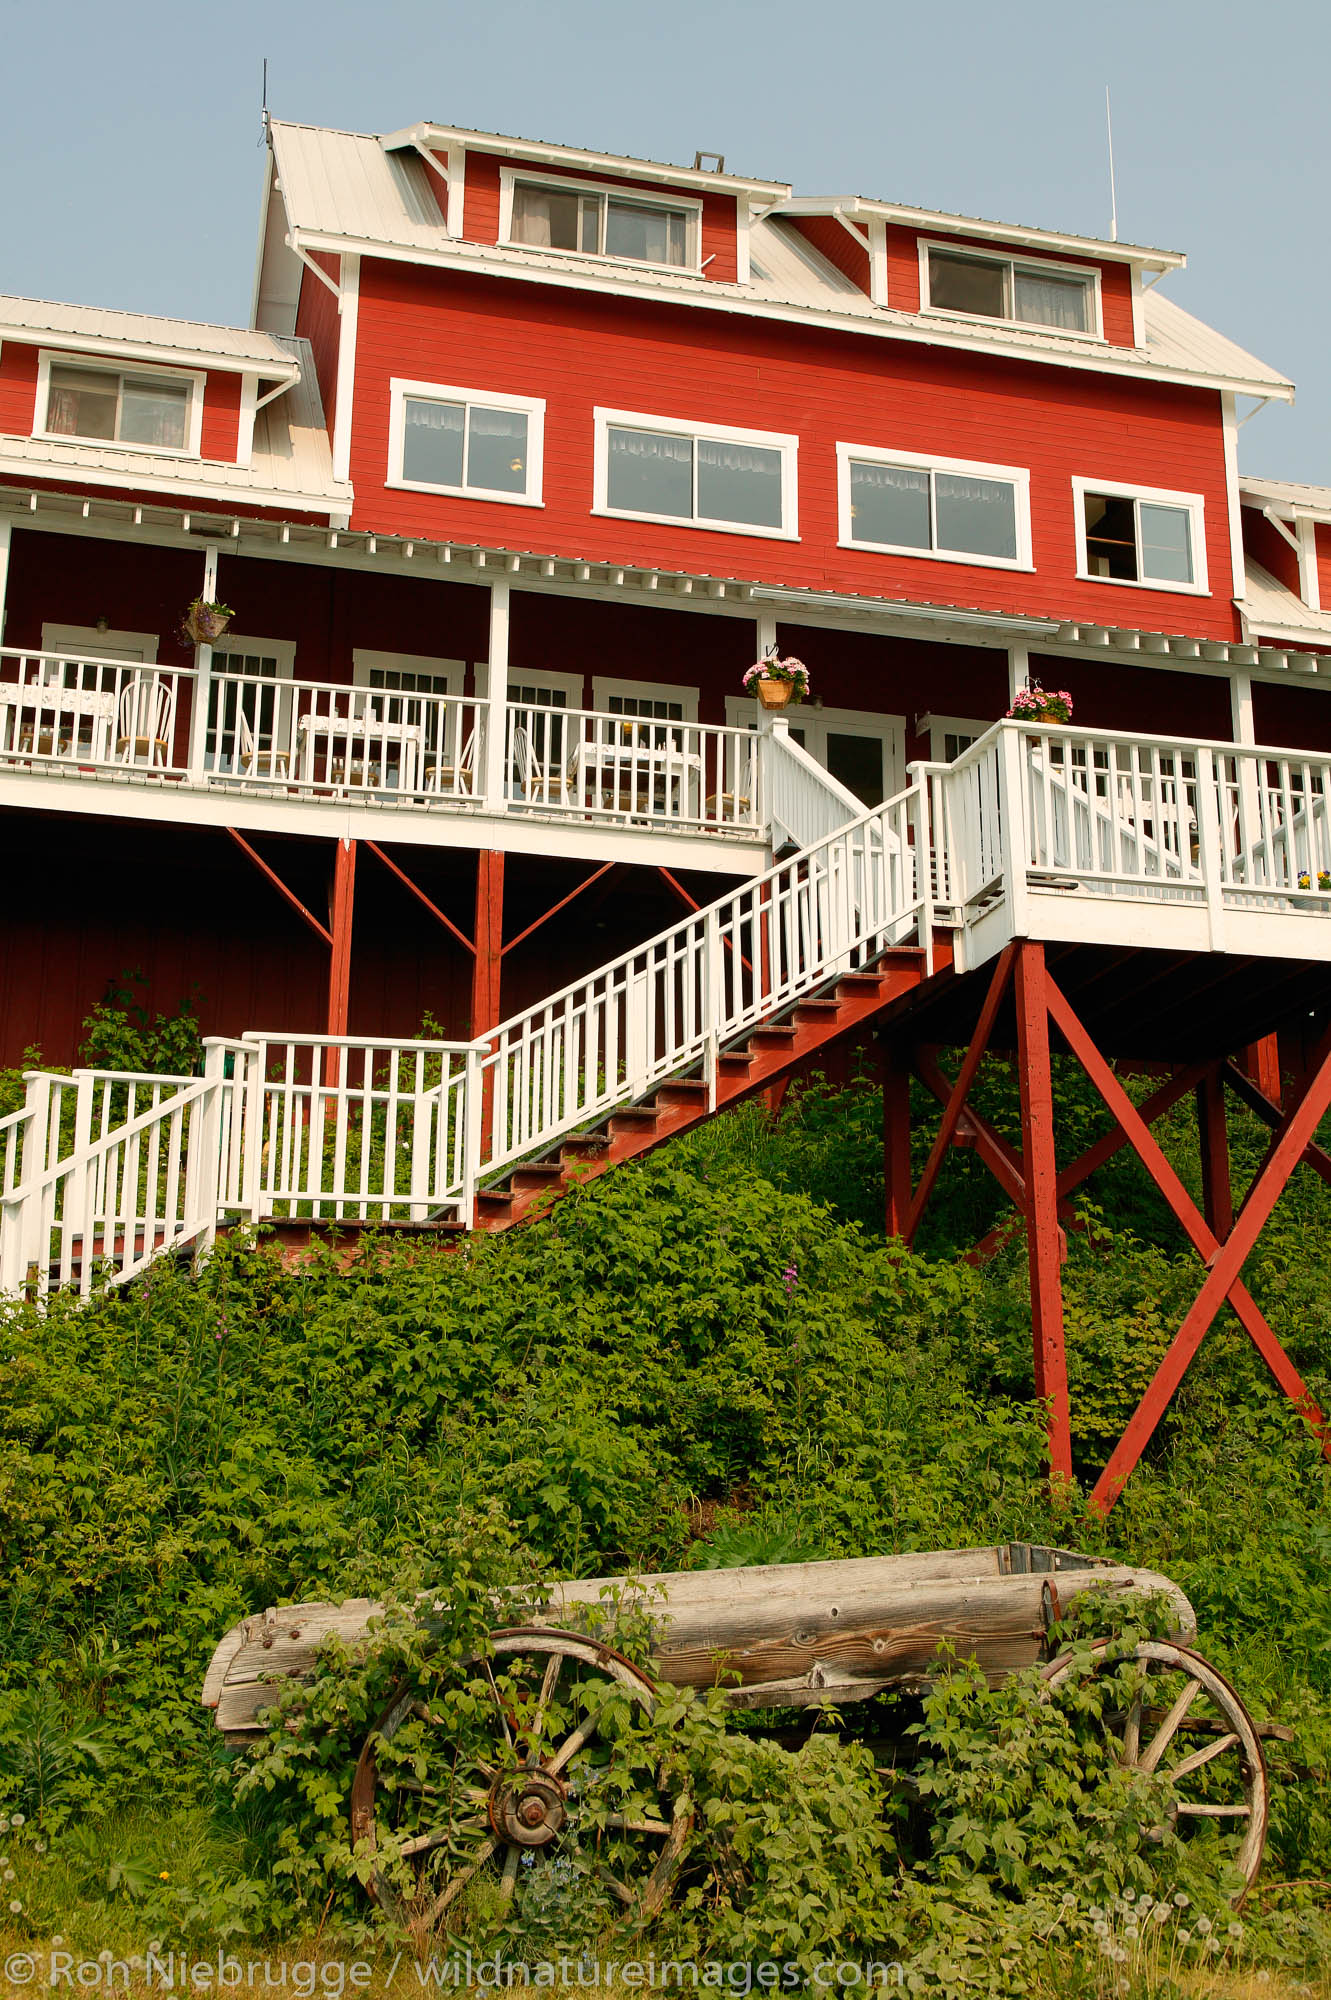 The Kennicott Logde sits near the buildings from the historic Kennicott Mill built in 1907 by the Kennecott Copper Corporation...